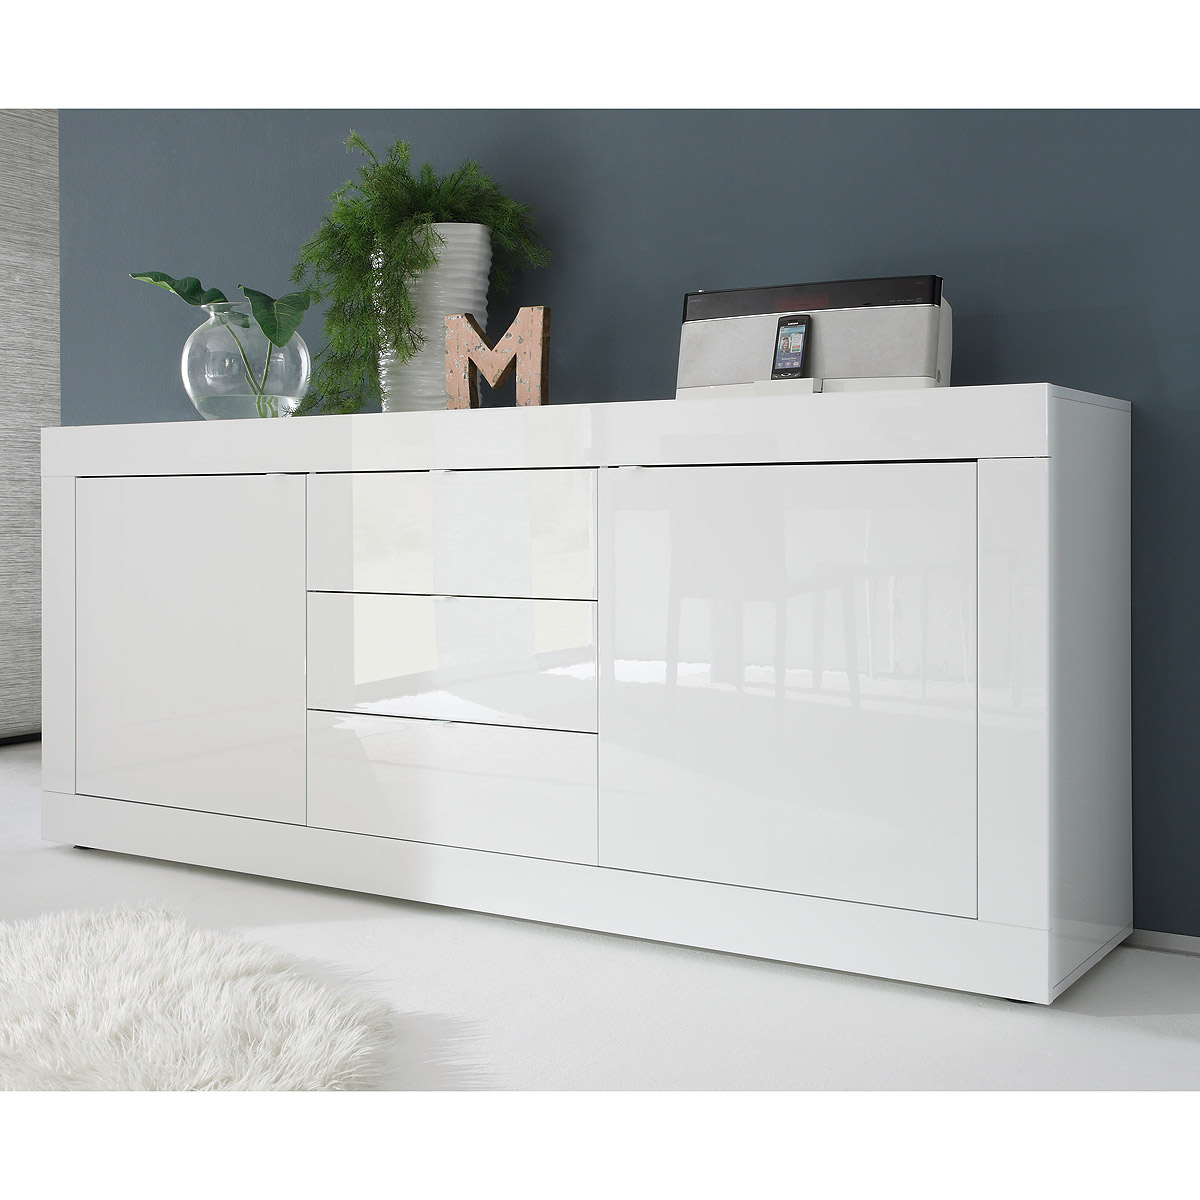 sideboard basic wohnzimmer kommode wei lackiert breite. Black Bedroom Furniture Sets. Home Design Ideas